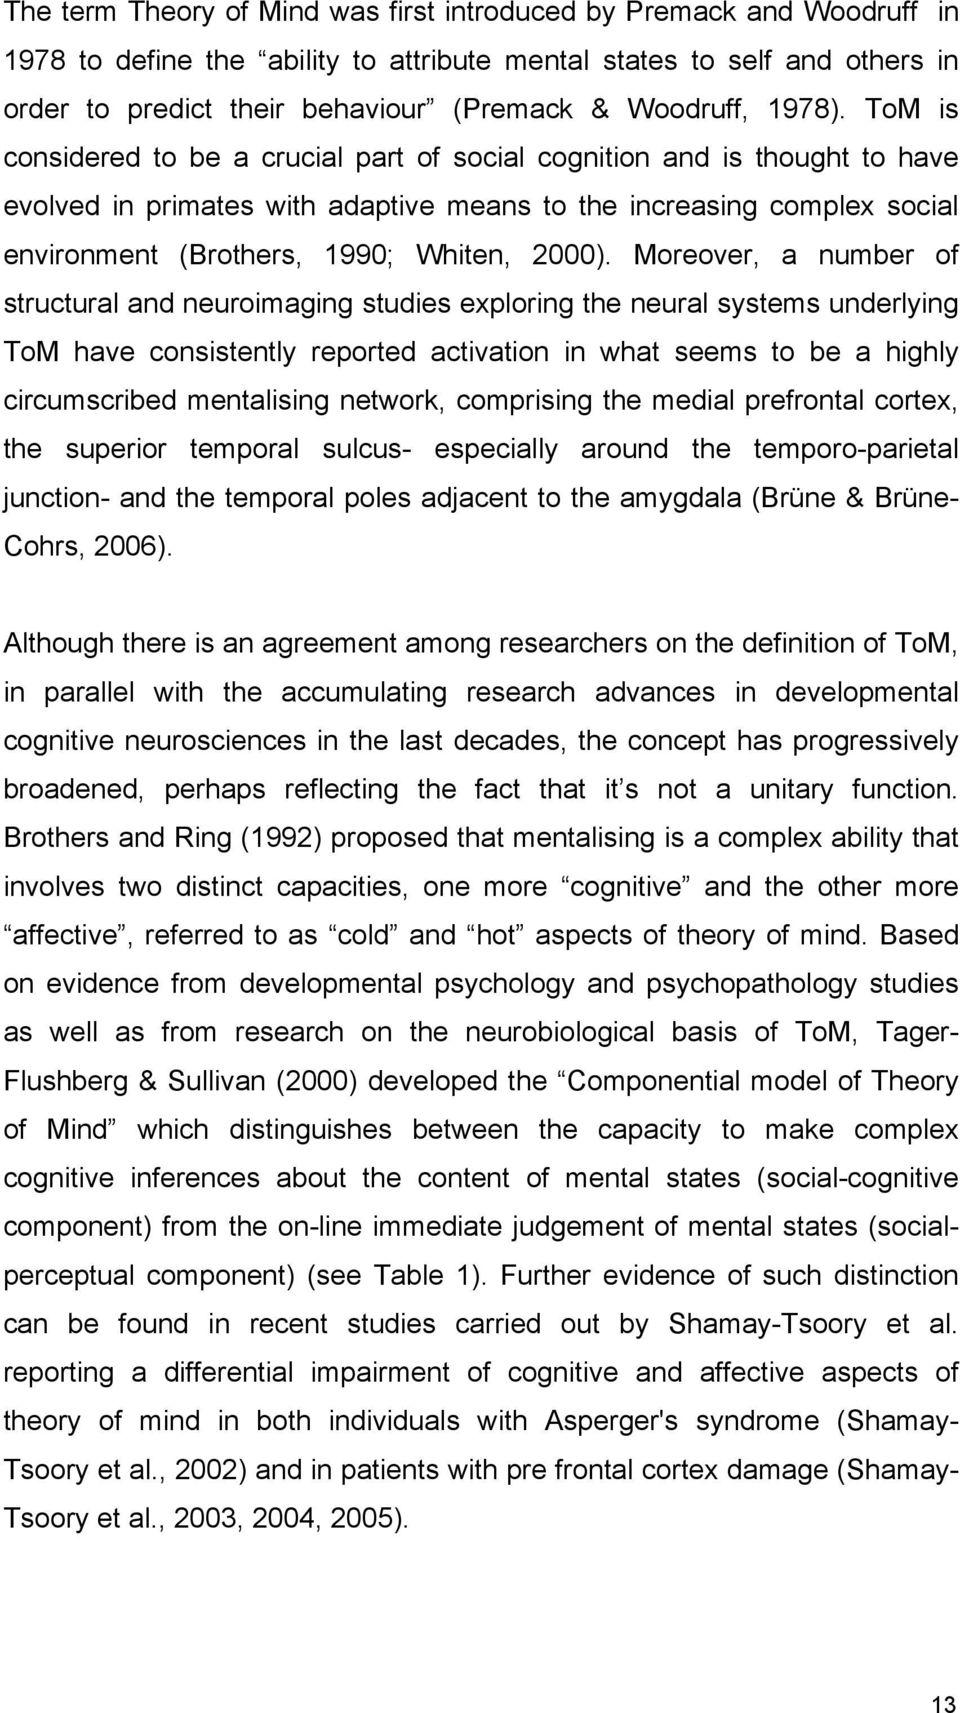 ToM is considered to be a crucial part of social cognition and is thought to have evolved in primates with adaptive means to the increasing complex social environment (Brothers, 1990; Whiten, 2000).